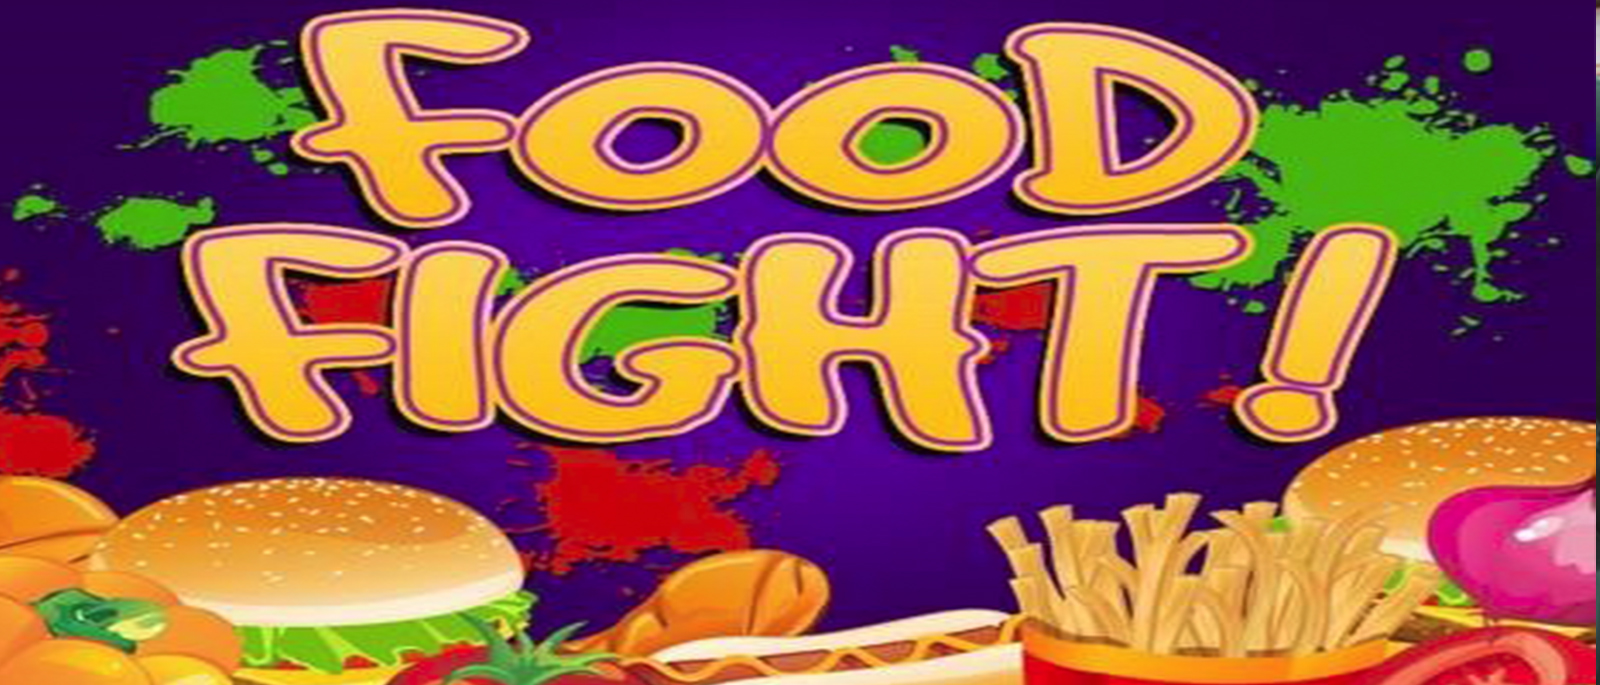 Food Fight Realtime Gaming Spielautomat